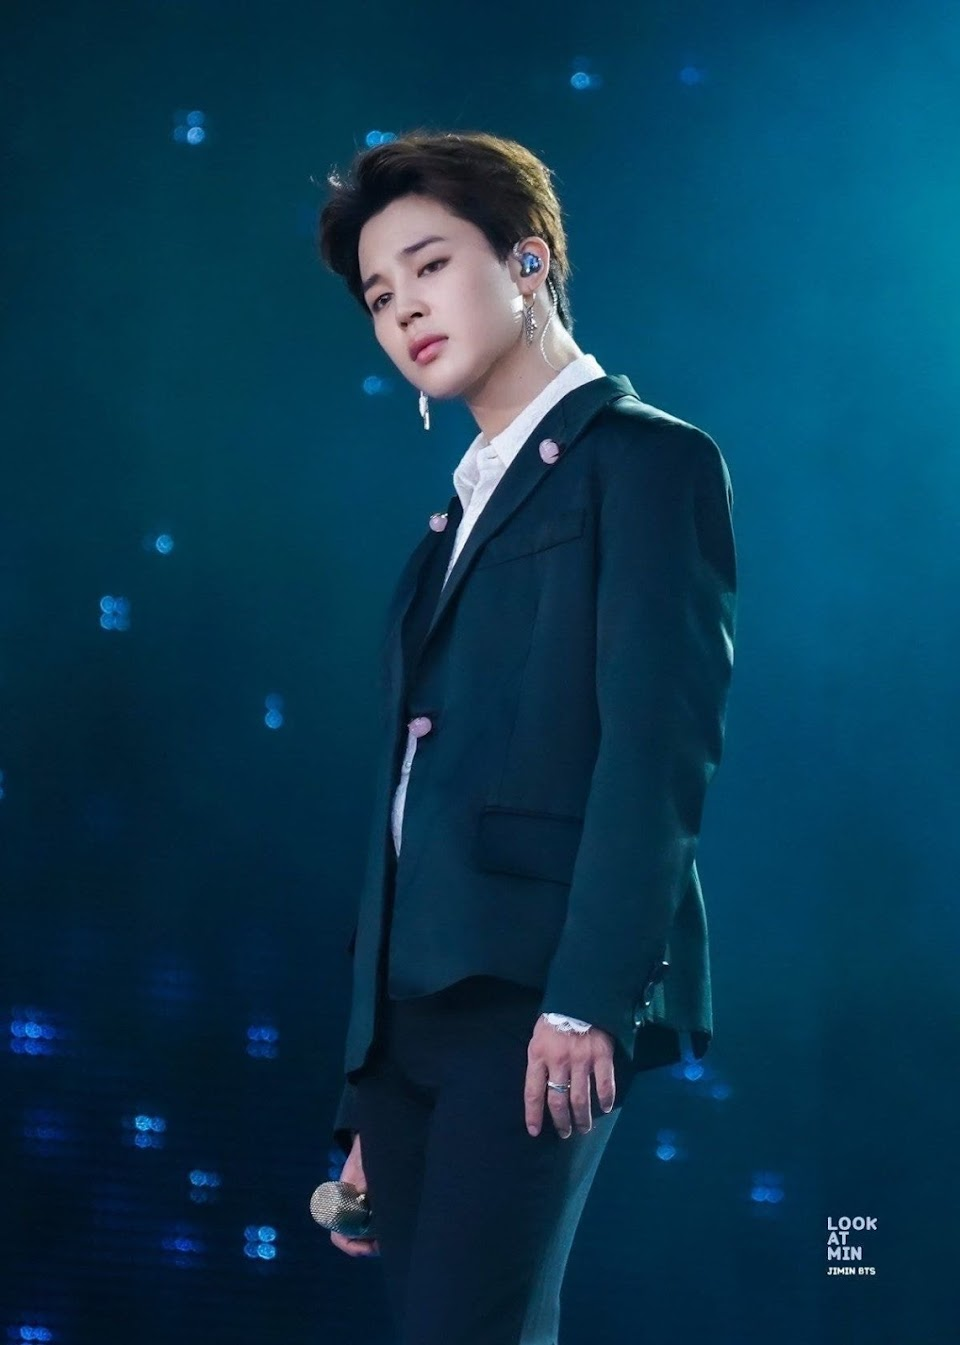 Bts S Jimin Is Making Fans Hearts Explode With Recent Concert Pictures Koreaboo